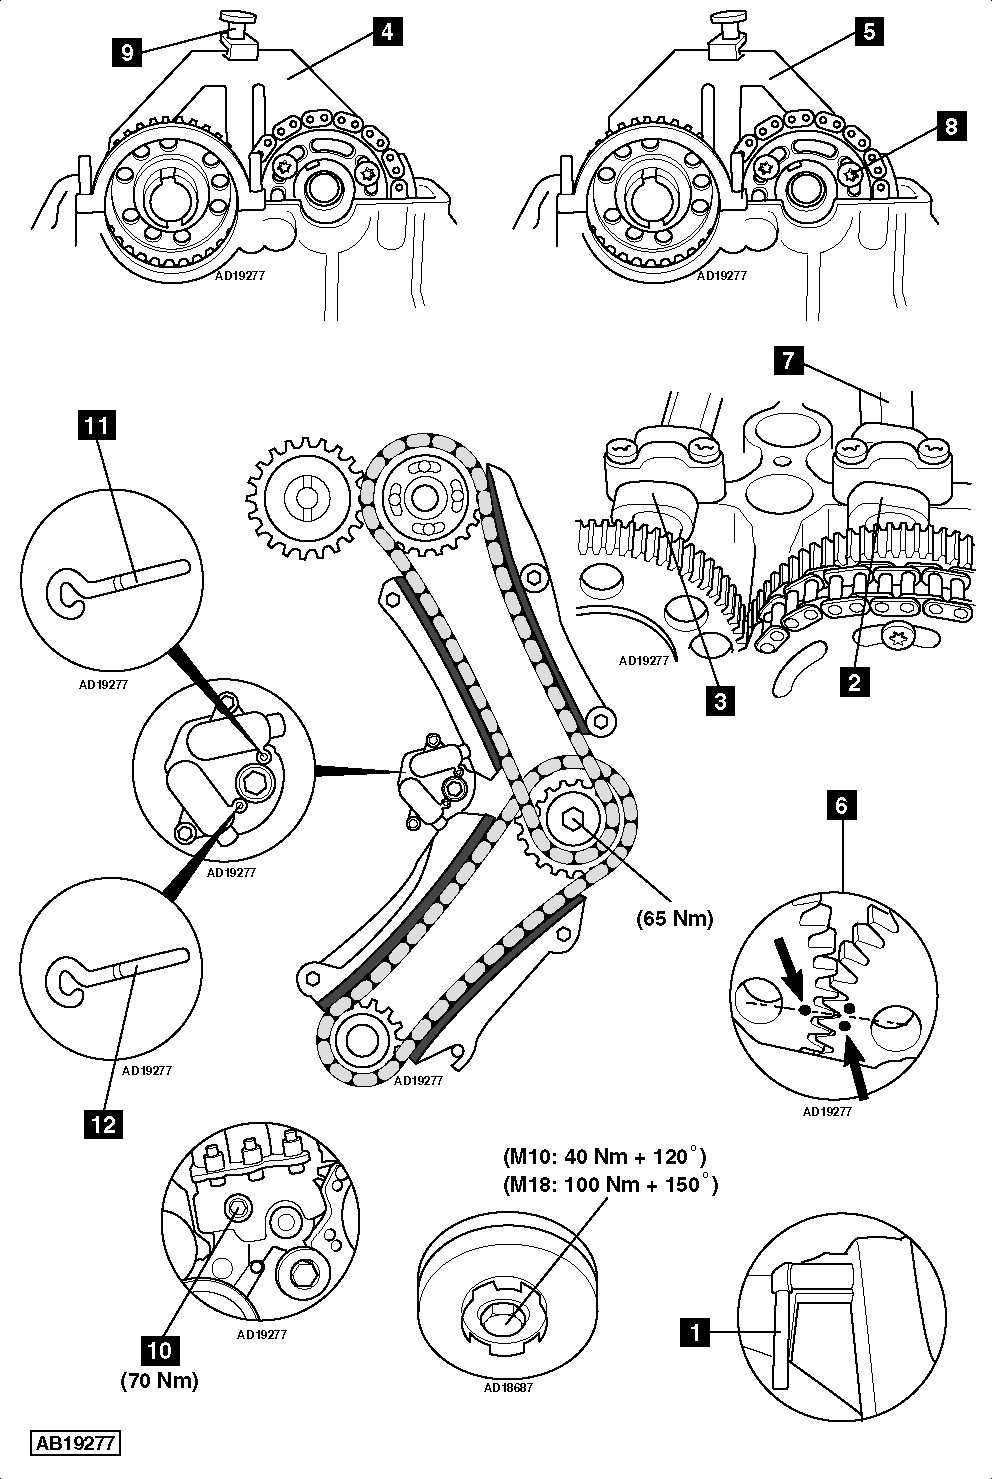 Nissan Frontier 2 4 Engine Diagram also 2005 Mitsubishi Lancer Es Parts Diagram furthermore T4606021 Replace timing belt chain kia rondo likewise Timing Belt Chain Jeep Wrangler also 5kc07 Mitsubishi Vereada Replace Timing Belt Vereada V6 3lt. on toyota timing belt replacement cost